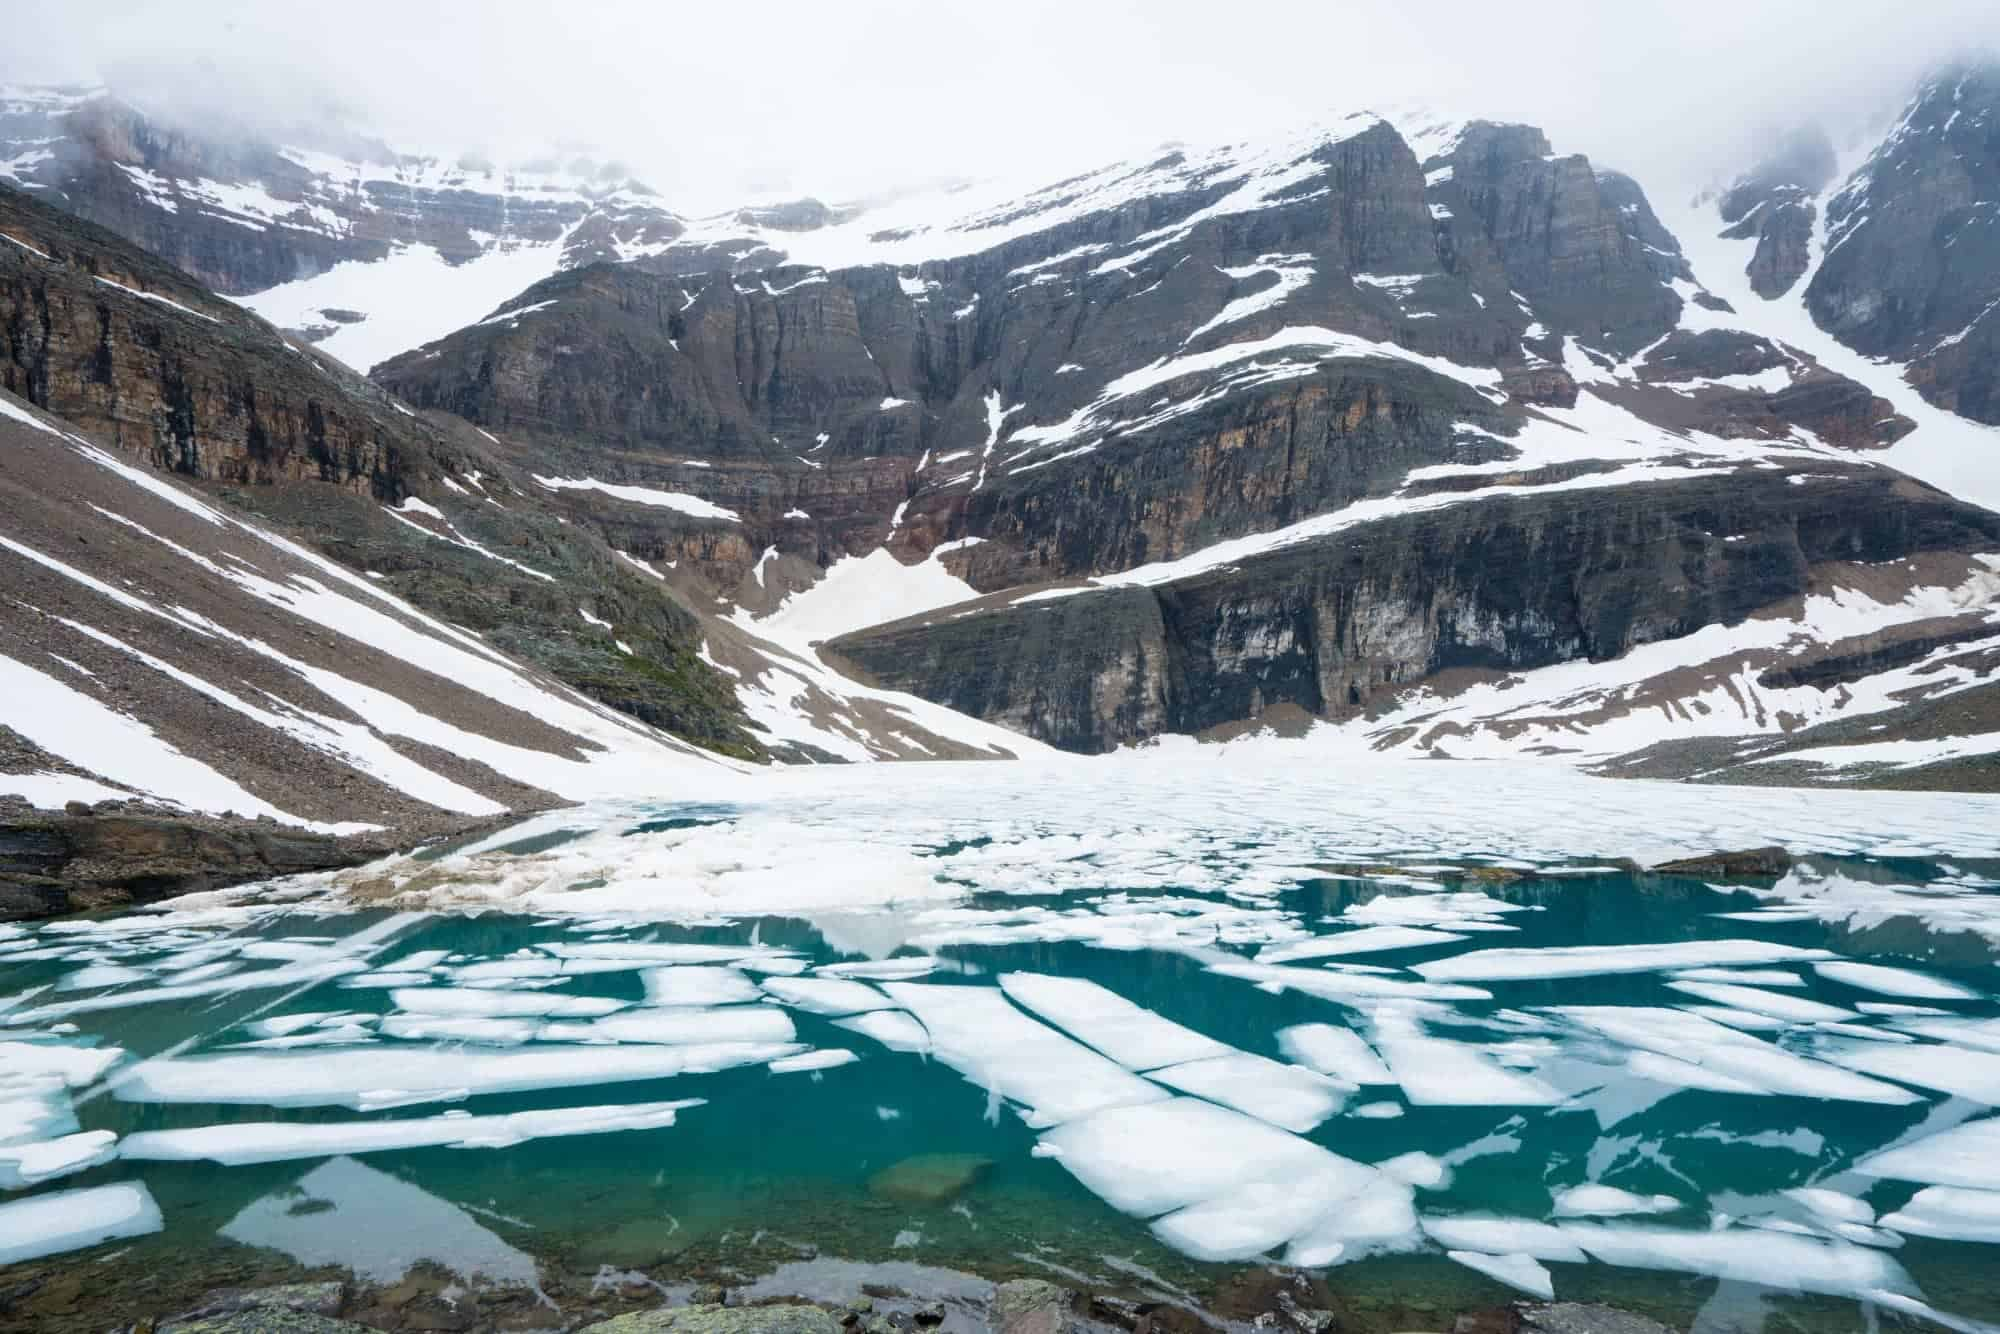 Lake Oesa // Four days at Lake O'Hara was the highlight of my Canadian Rockies trip. Get my detailed hiking & camping guide to this British Columbia National Park.